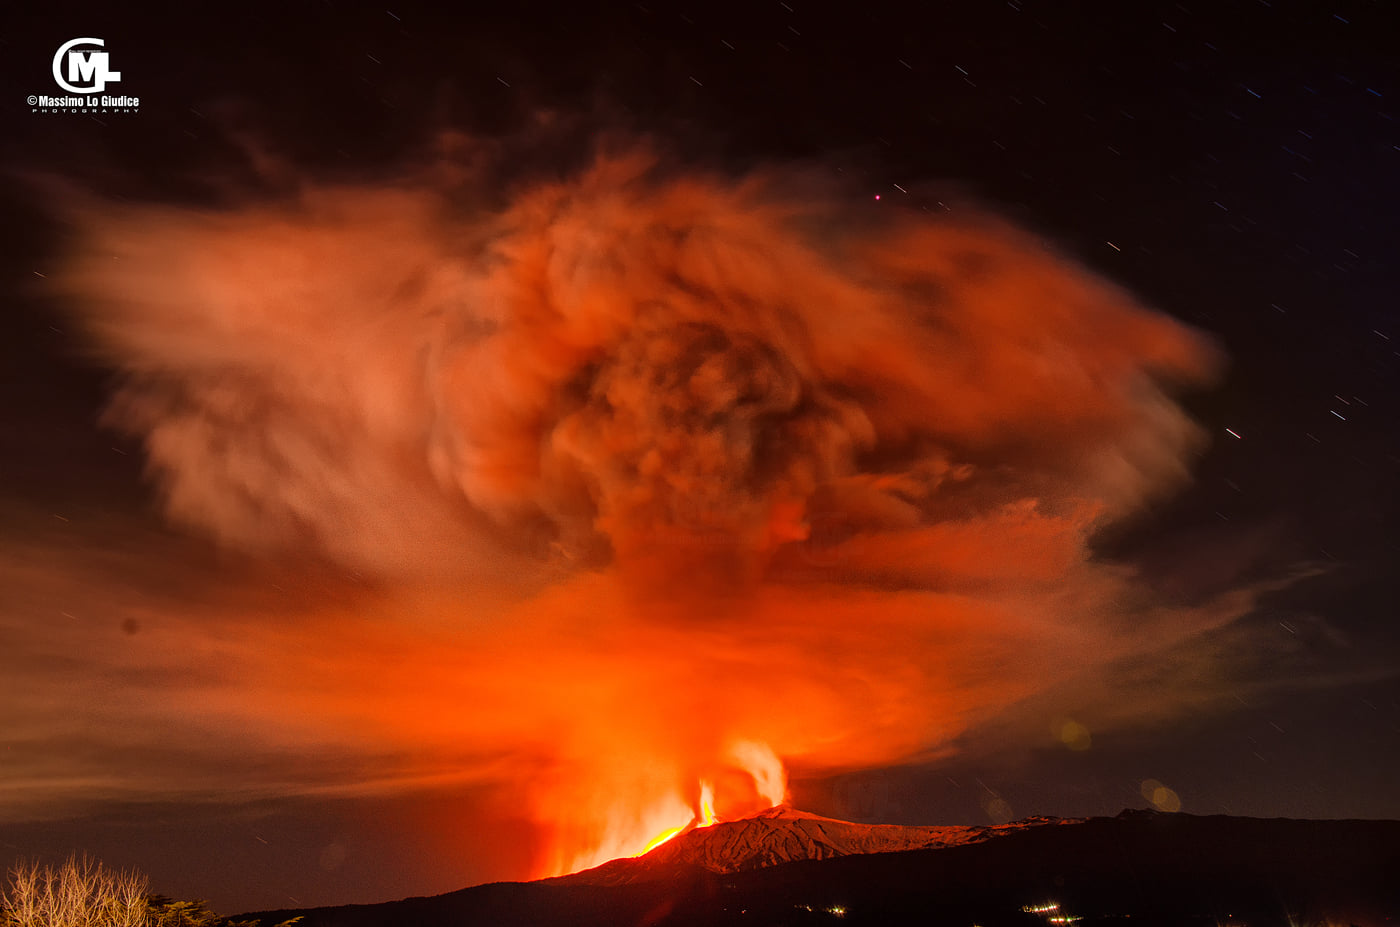 View of the eruption at night with its impressive umbrella cloud (image: Massiimo Lo Giudice / facebook)